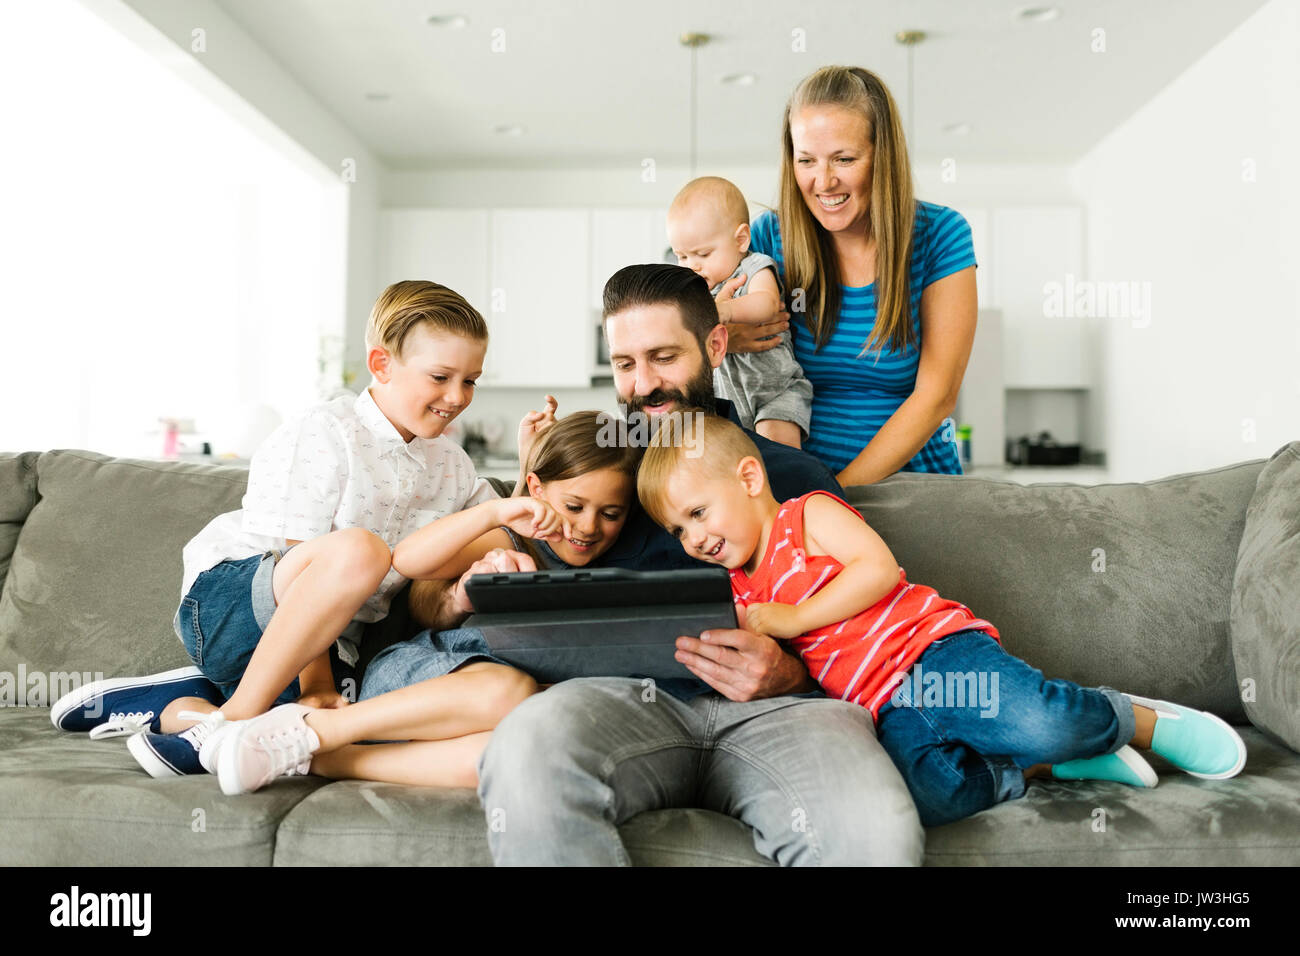 Family with four children (6-11 months, 2-3, 6-7) using digital tablet - Stock Image